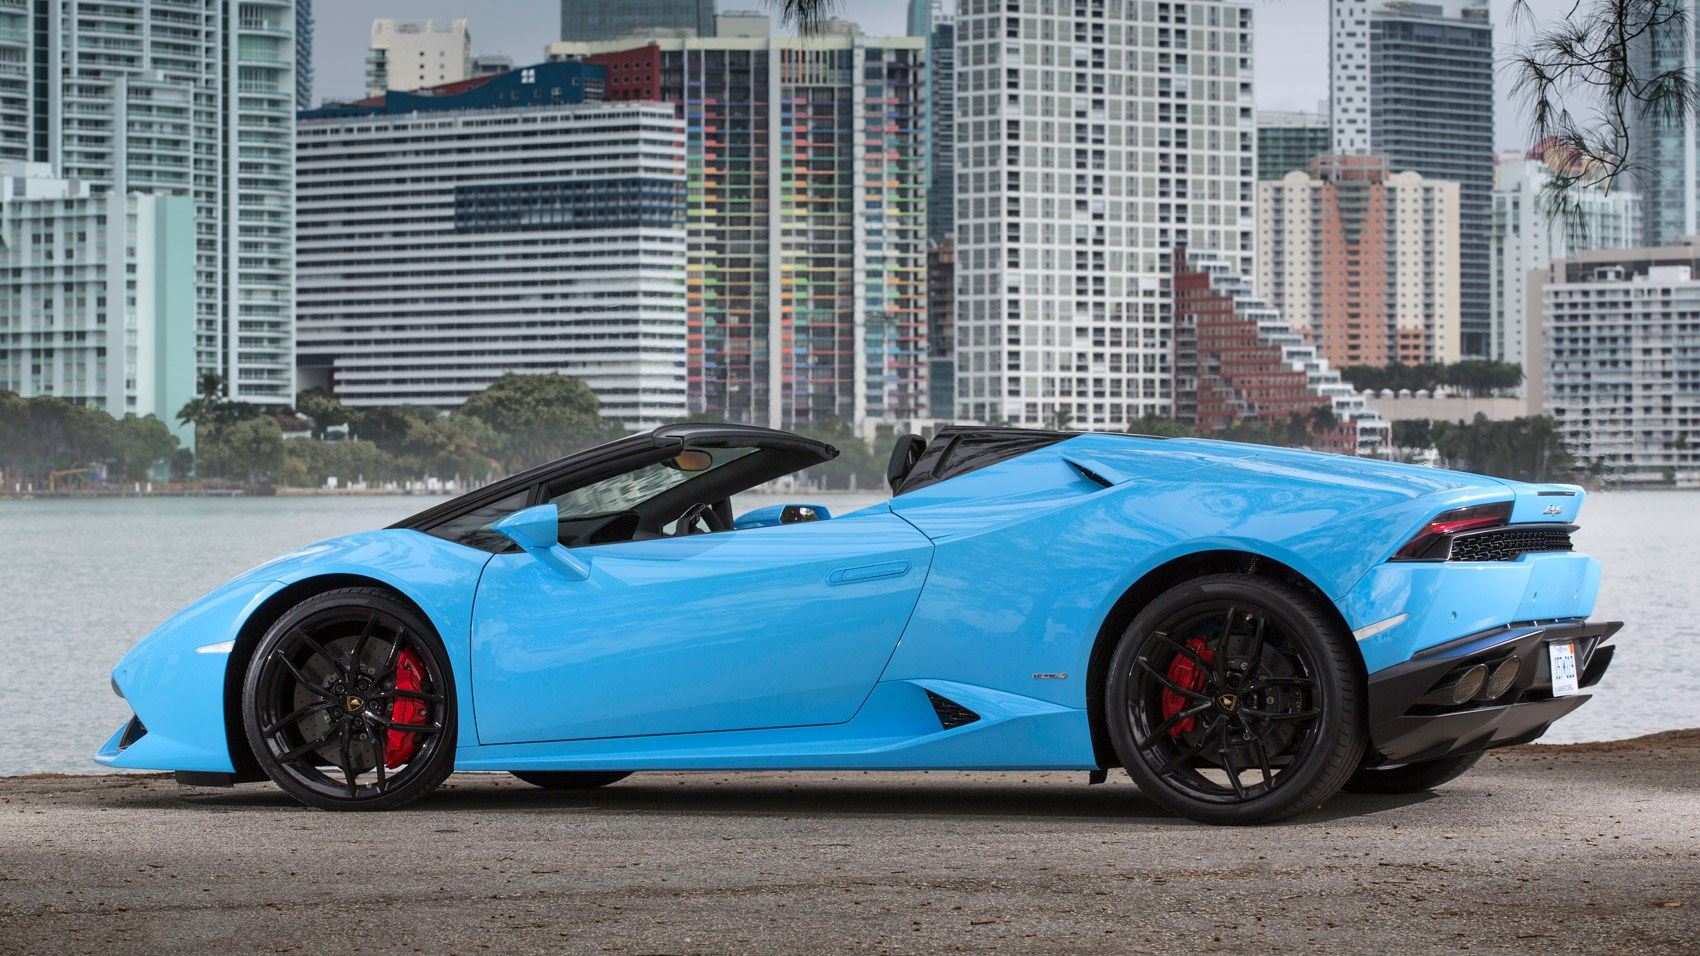 Lamborghini huracan lp610 4 spyder 2016 review car for Wing motors automobiles miami fl